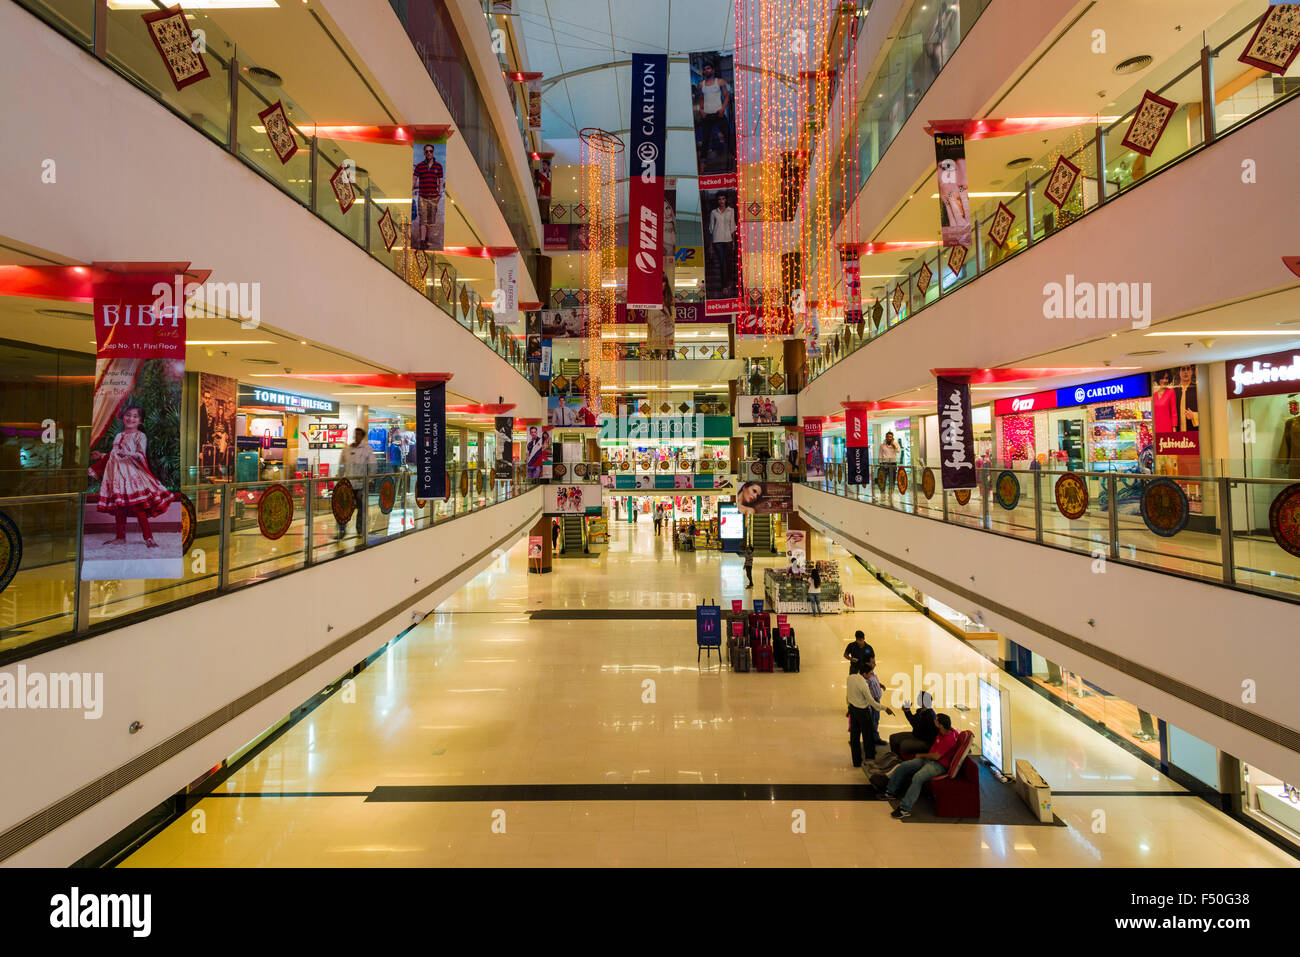 The main hall of the modern shopping mall Gulmohar Park with four floors and many shops - Stock Image